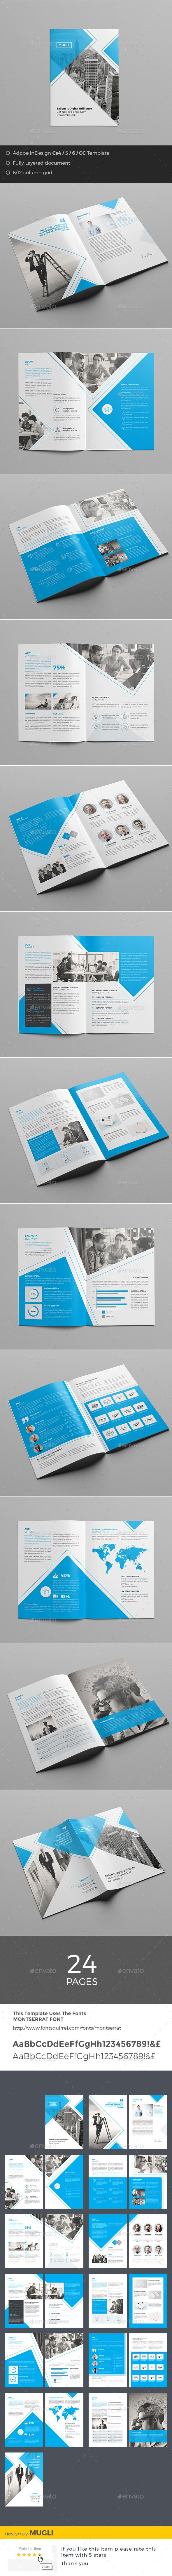 Business Brochure Template InDesign INDD. Download here: http://graphicriver.net/item/business-brochure/15902399?ref=ksioks